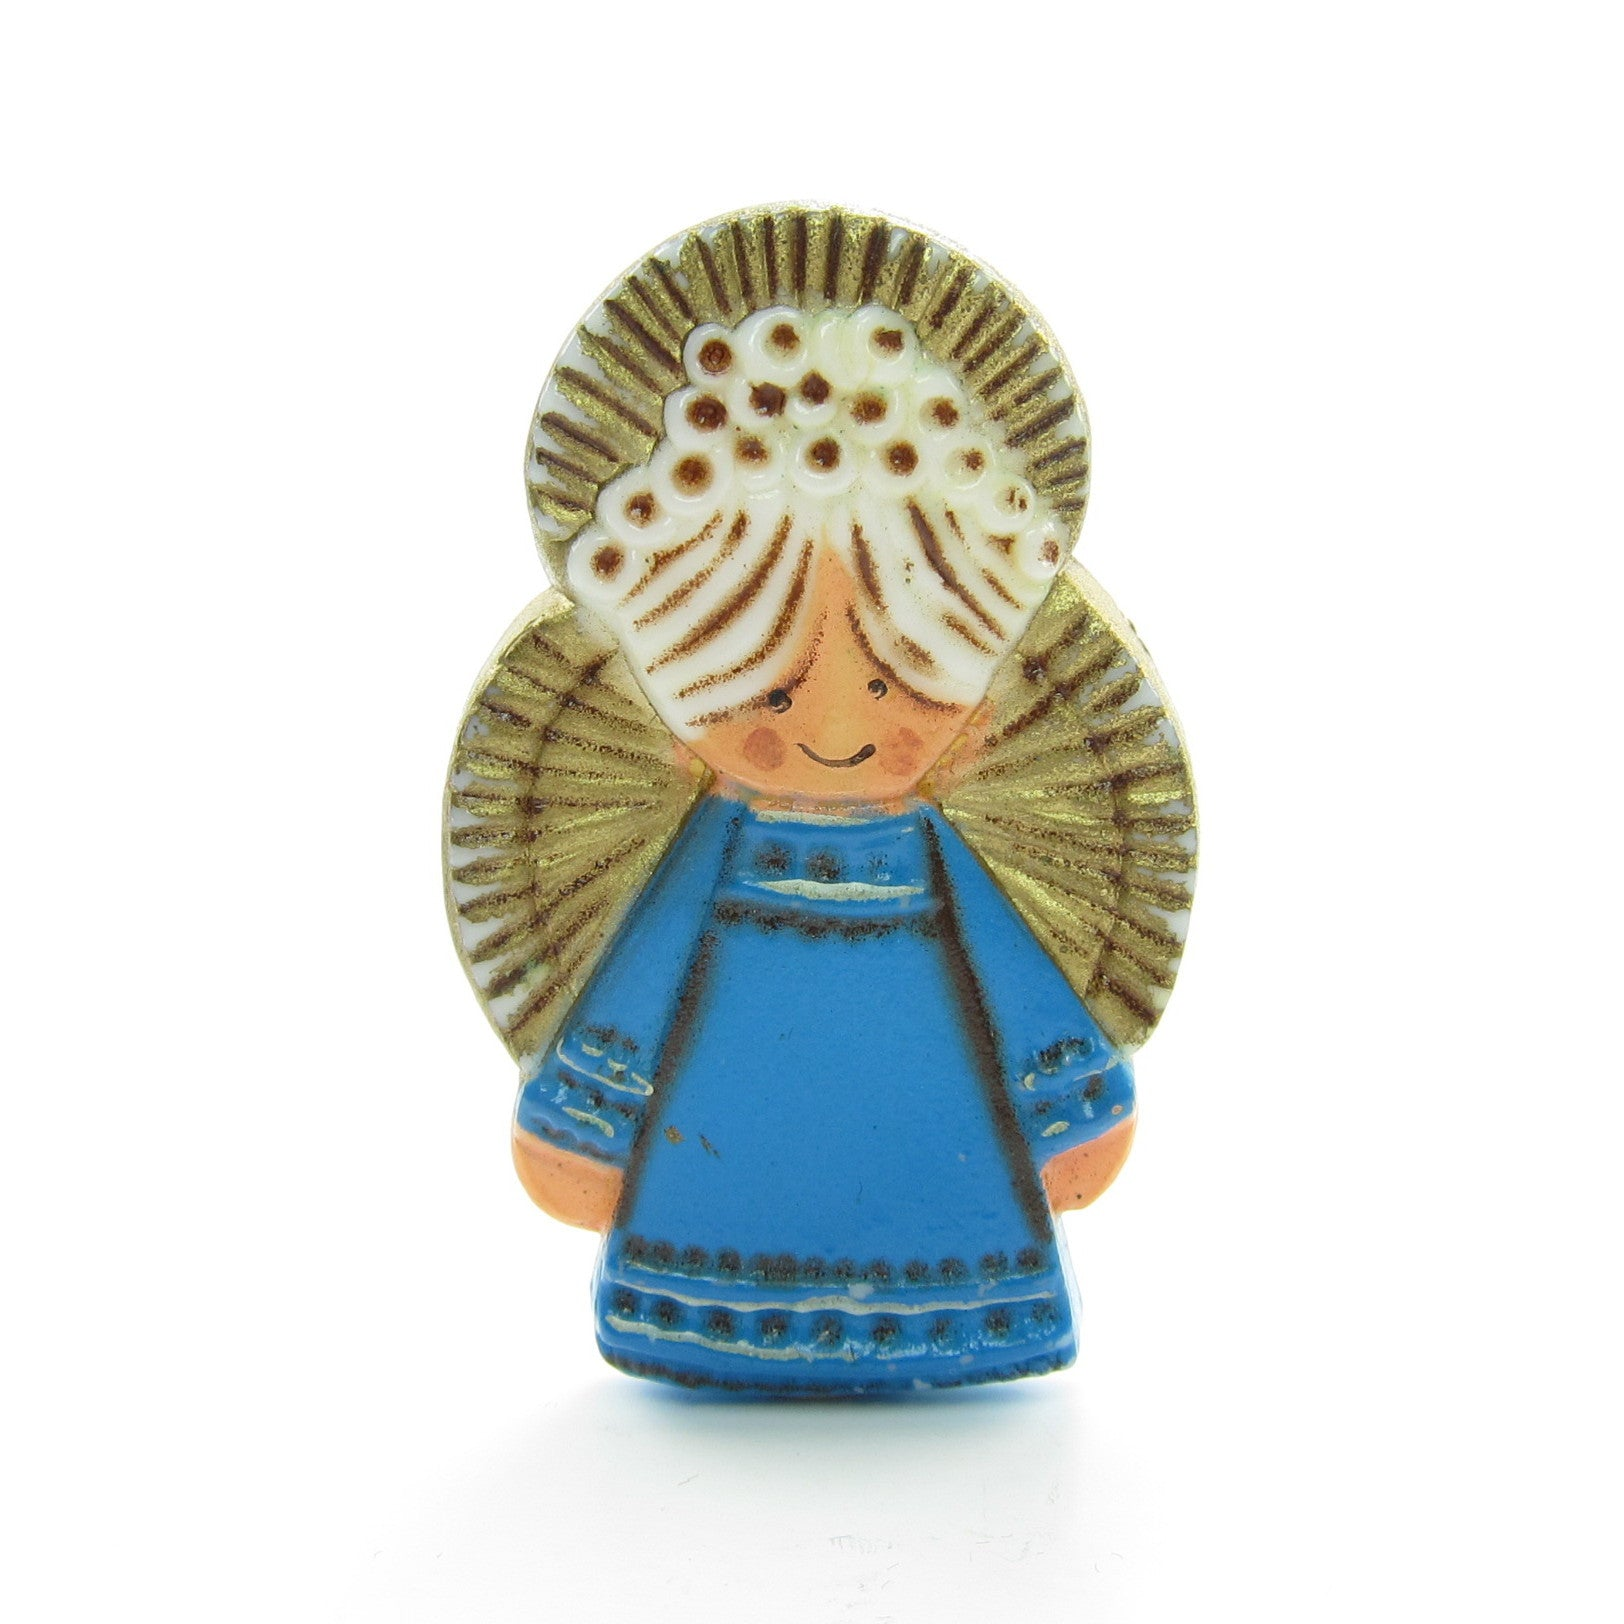 Hallmark angel pin with blue dress